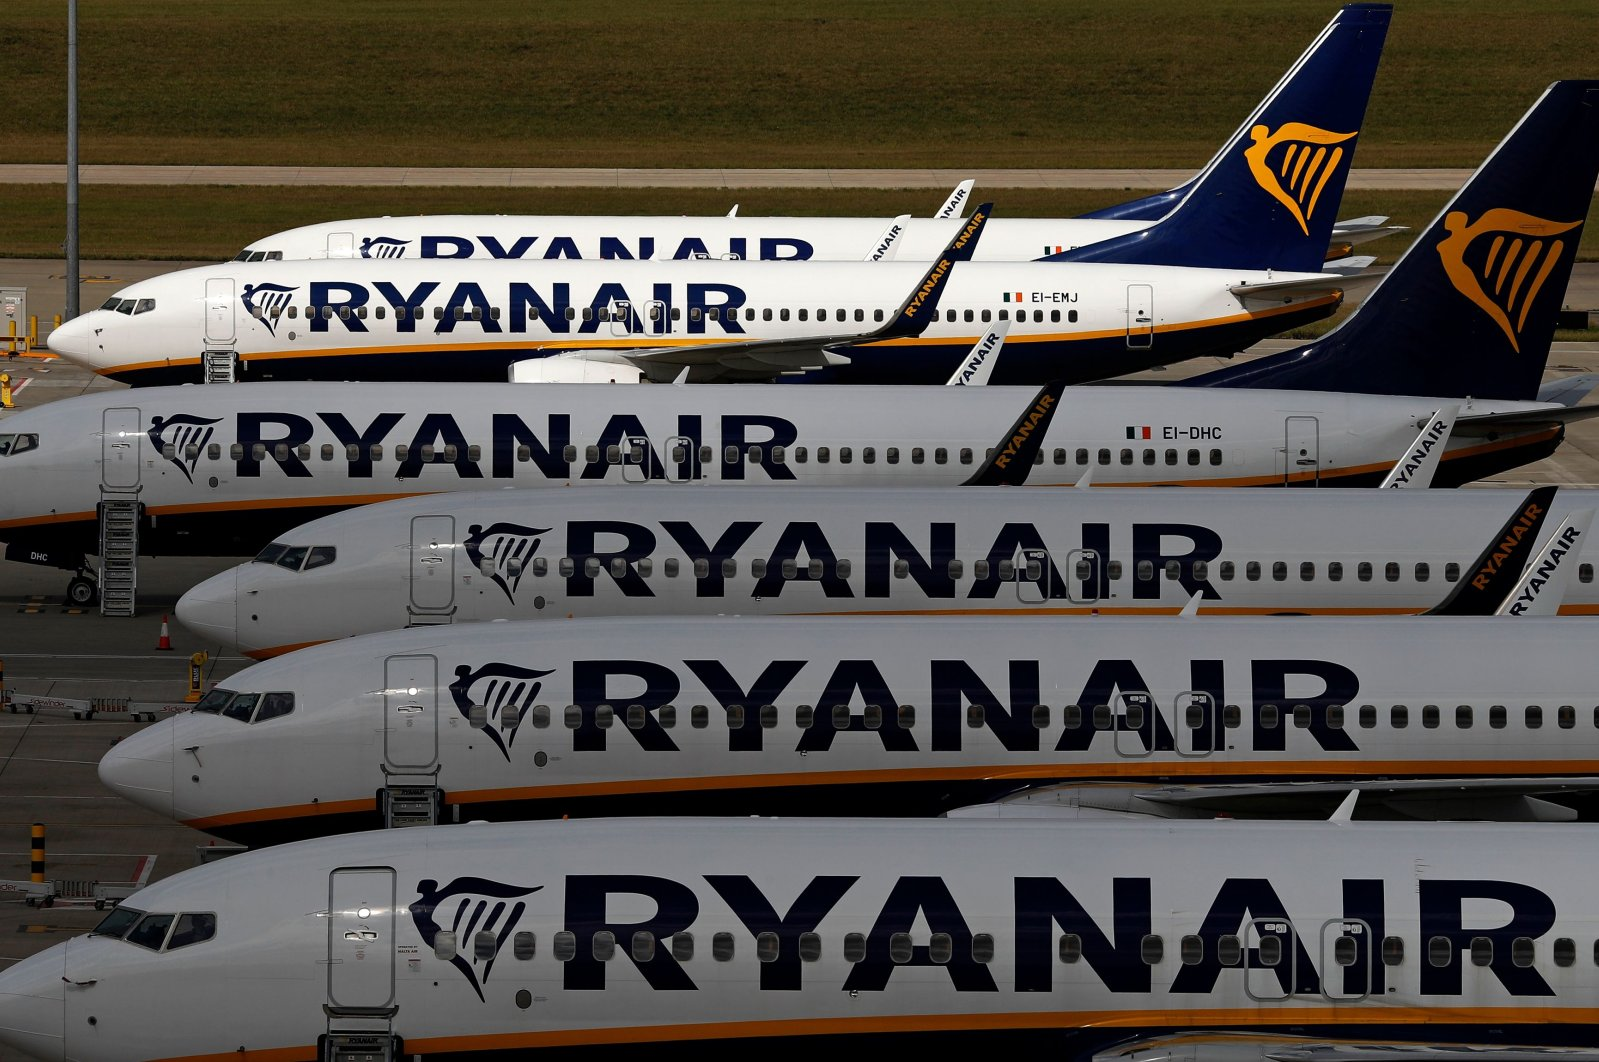 Ryanair aircraft are pictured at the Stansted airport, northeast of London, Aug. 20, 2020. (AFP Photo)